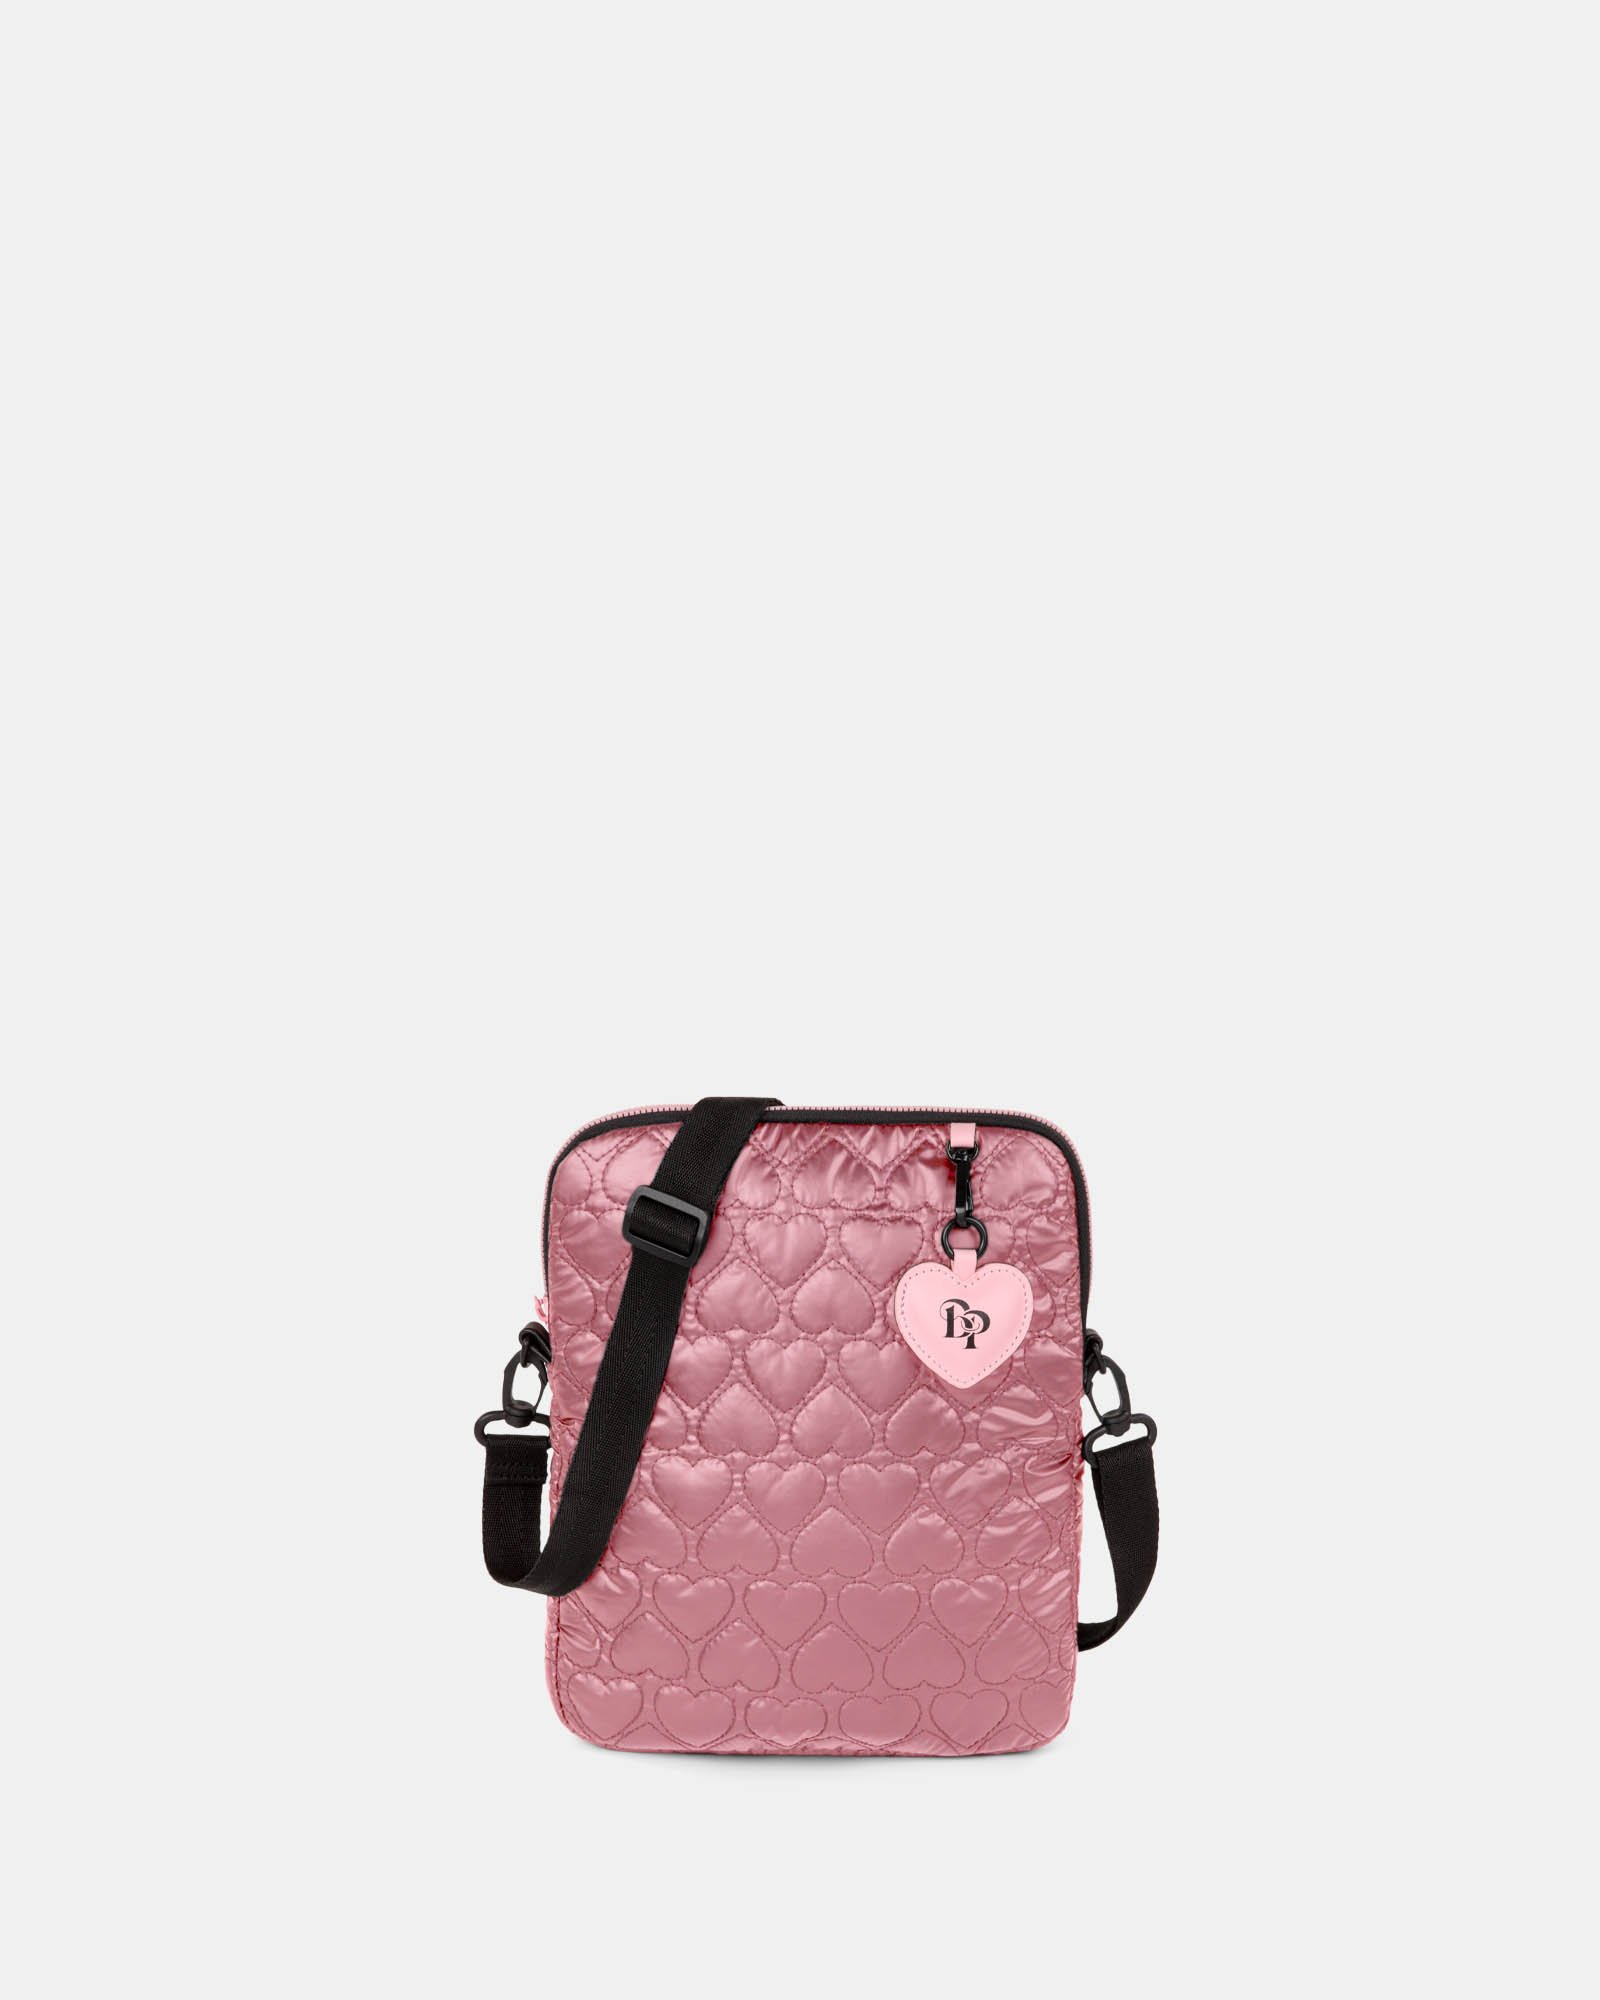 BLACKPINK - Be Still My Heart Collection - Crossbody bag with Padded main compartment with a top zippered opening, ideal to store your tablet- pink - BLACKPINK - Zoom